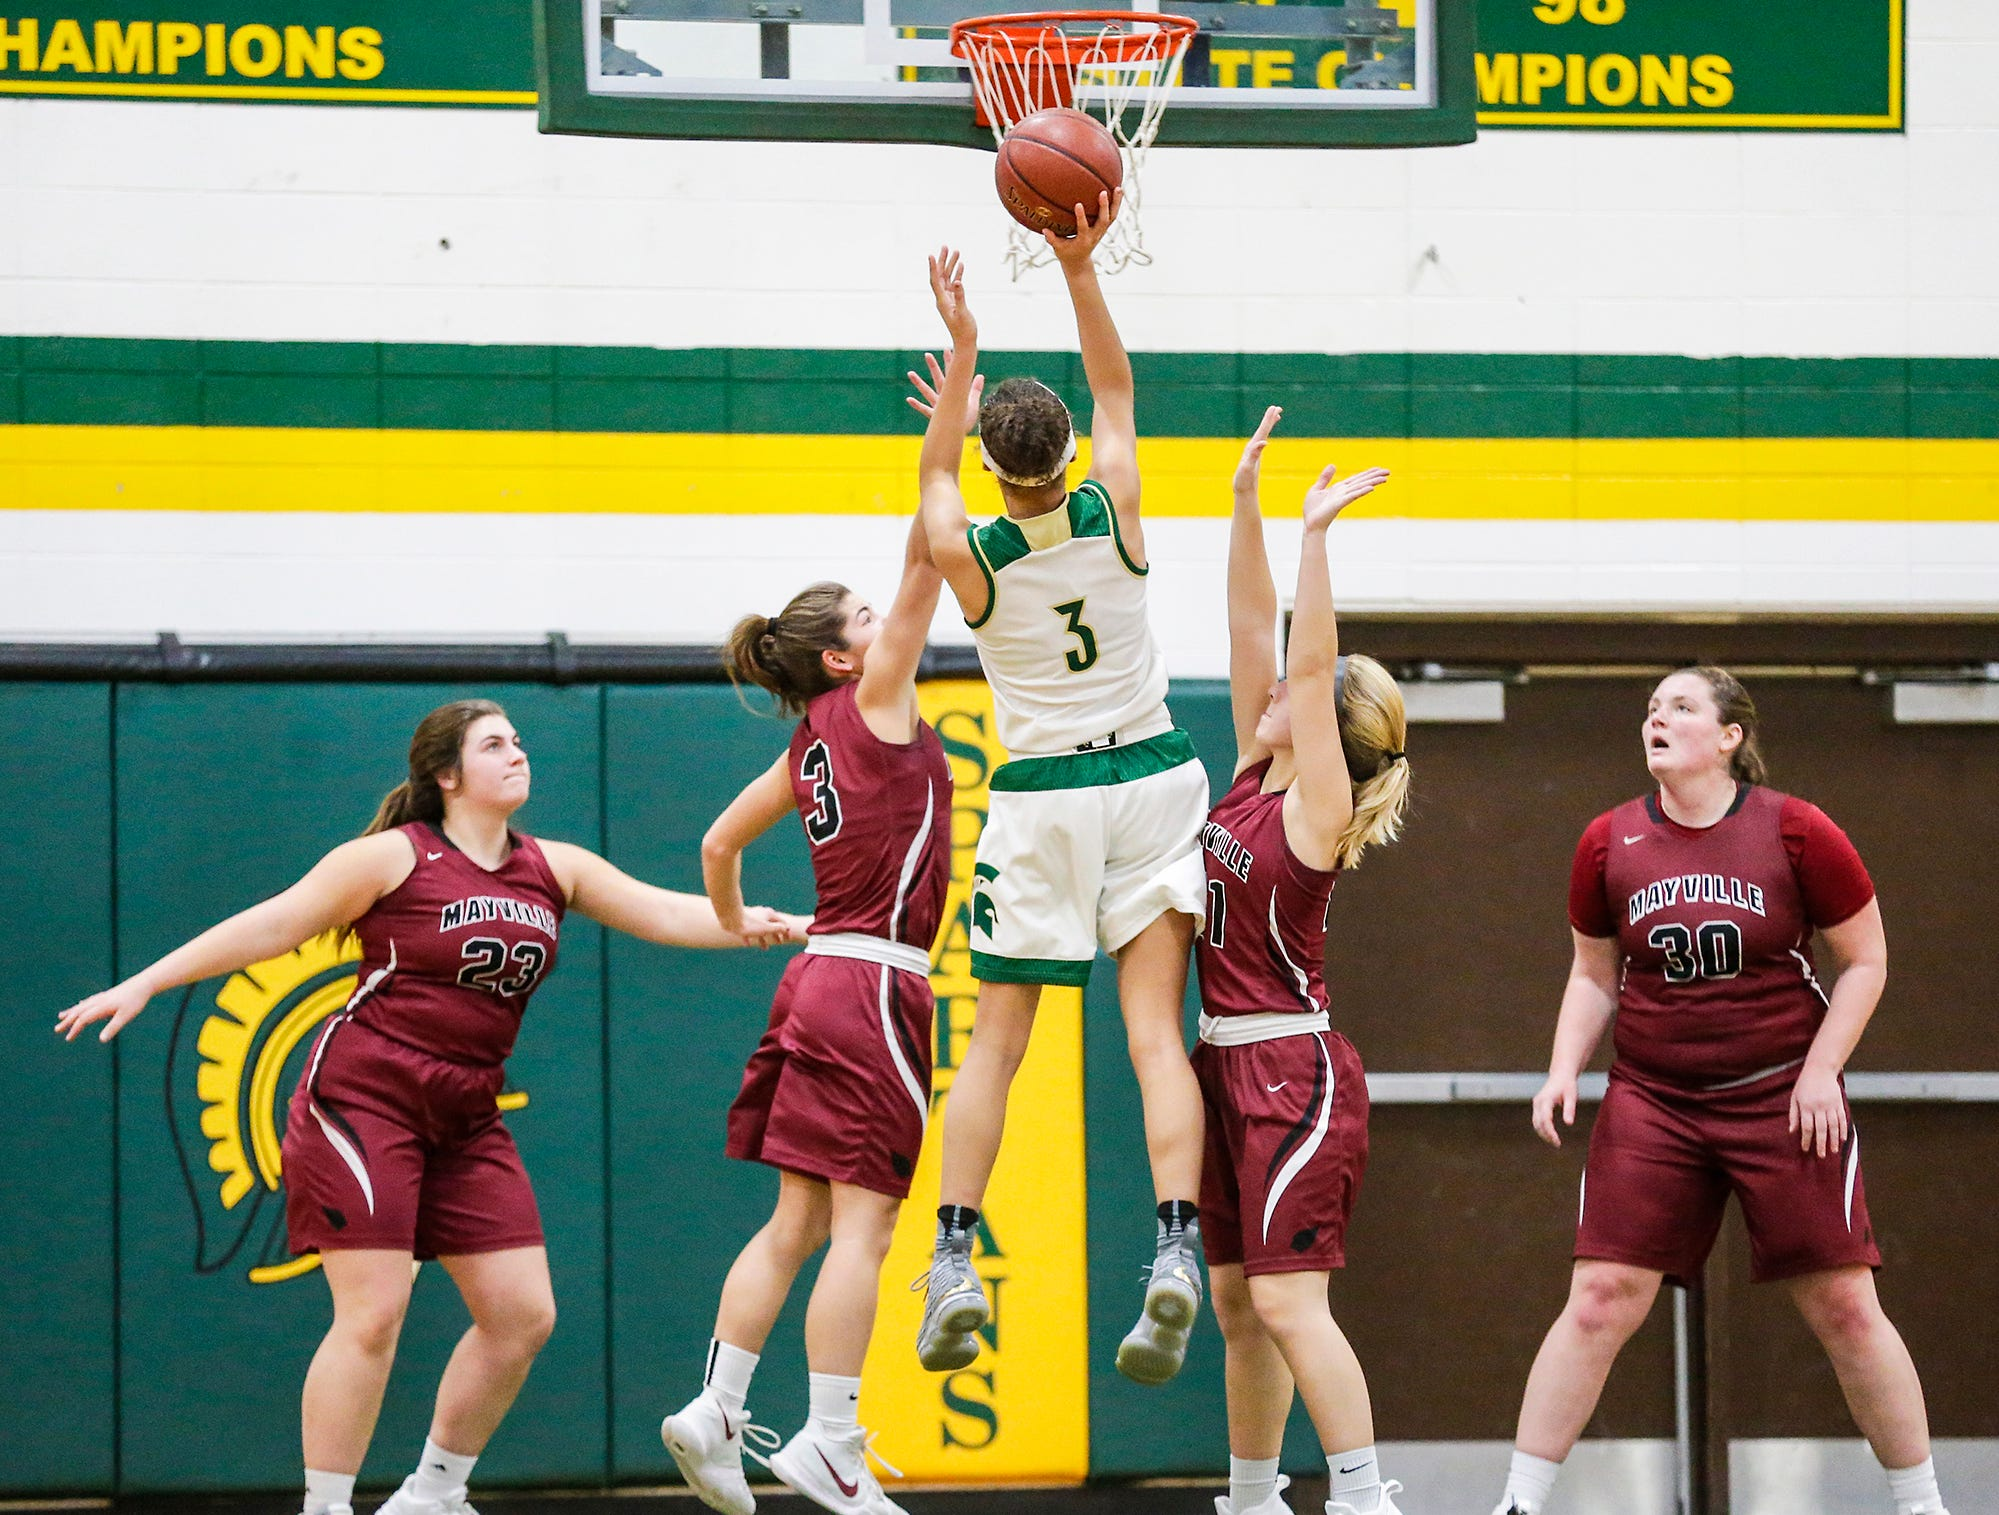 Laconia High School girls basketball's Kiarra Otto goes up for a basket against Mayville High School during their game Friday, November 30, 2018 in Rosendale. Doug Raflik/USA TODAY NETWORK-Wisconsin